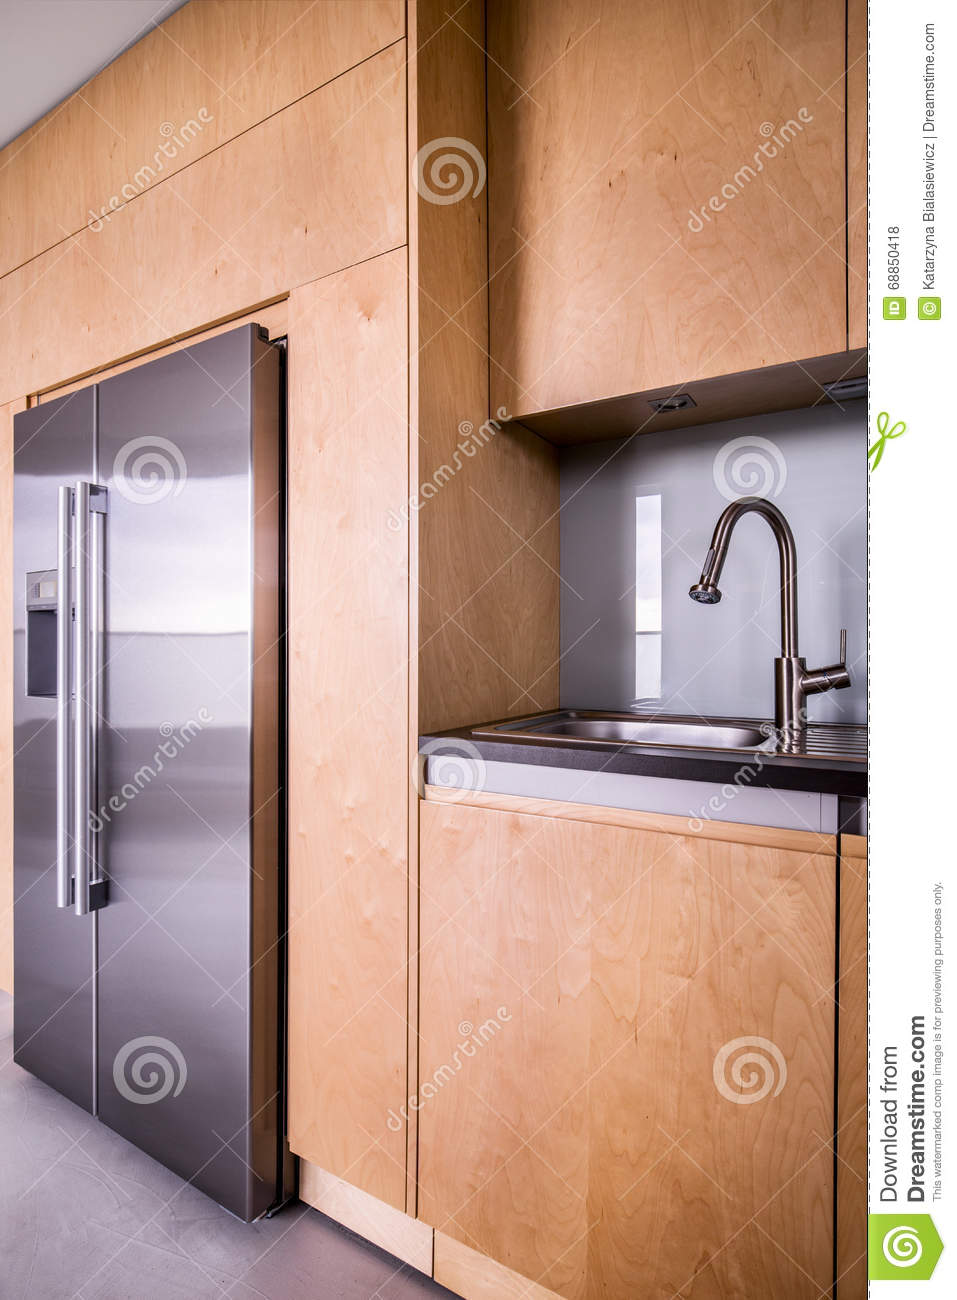 Modern Kitchen Design Stock Photo Image 68850418